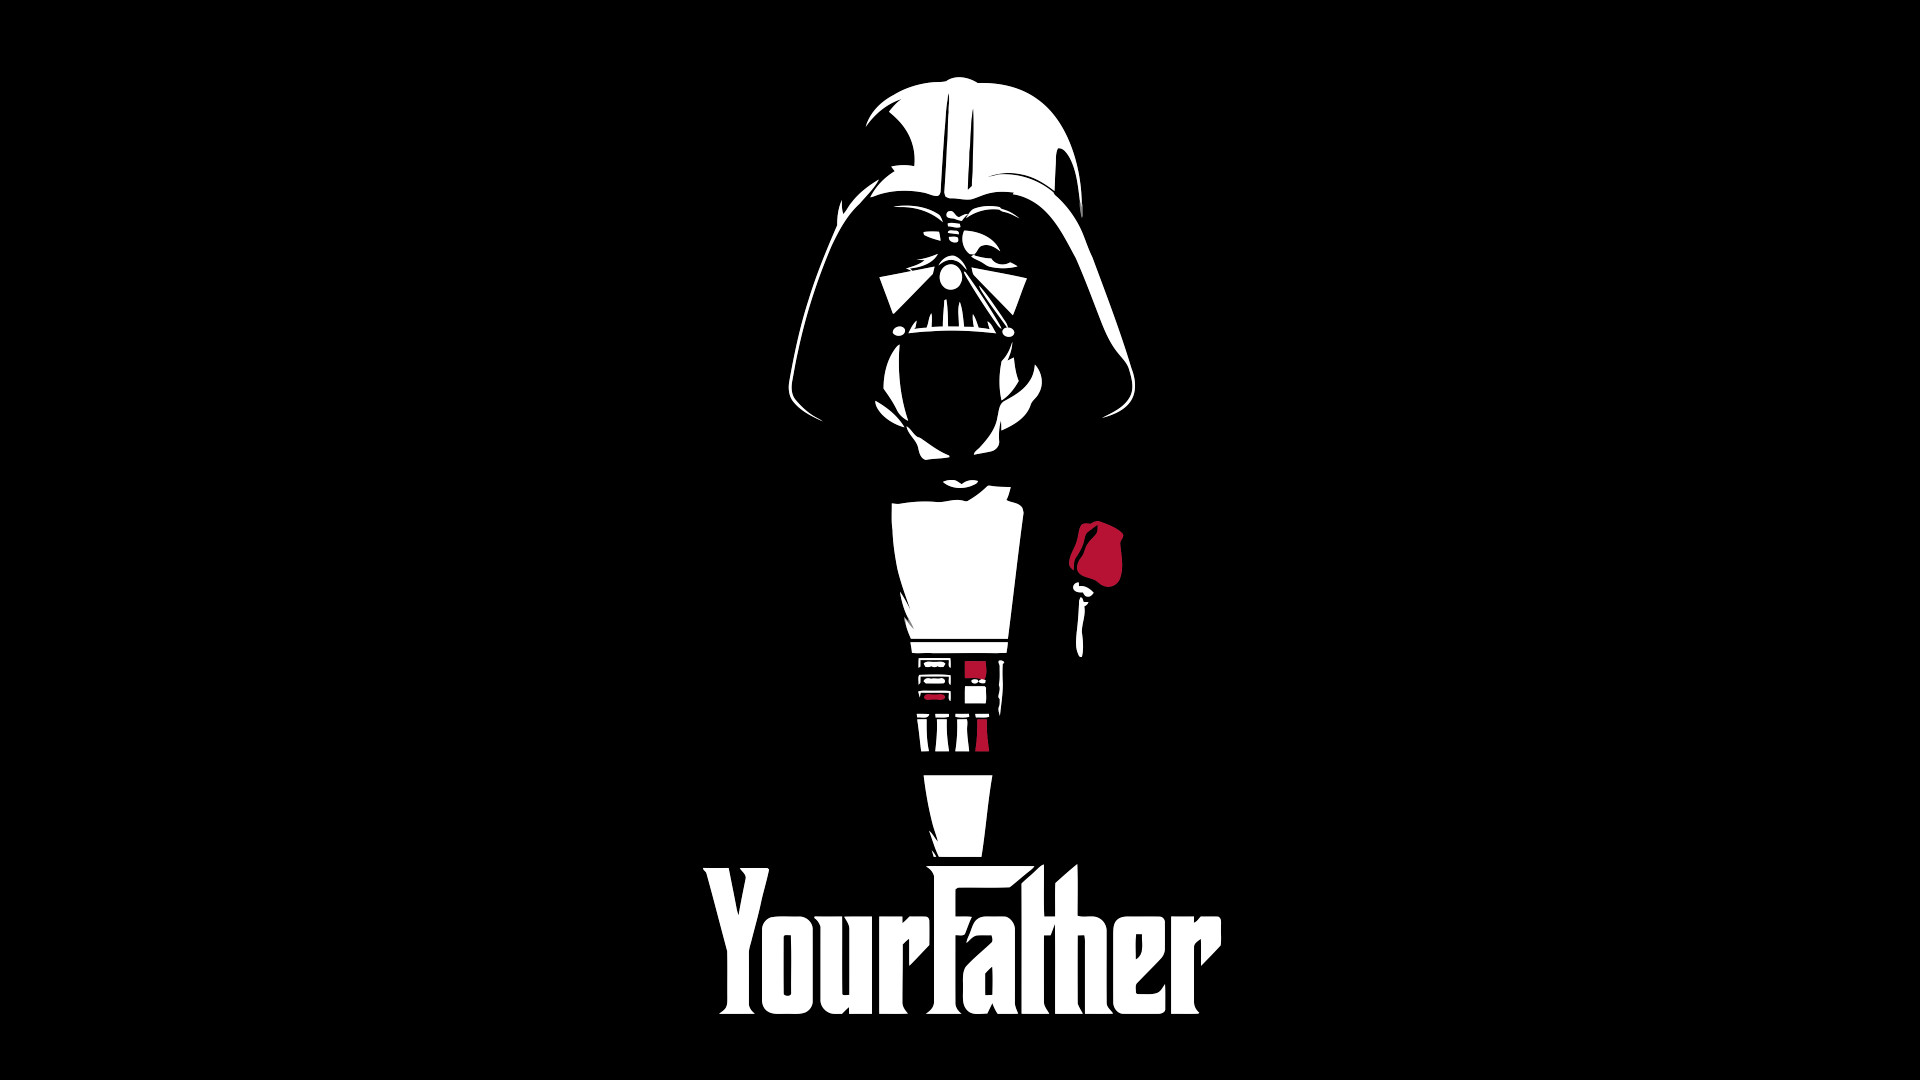 Darth Vader, The Godfather, Father, Star Wars